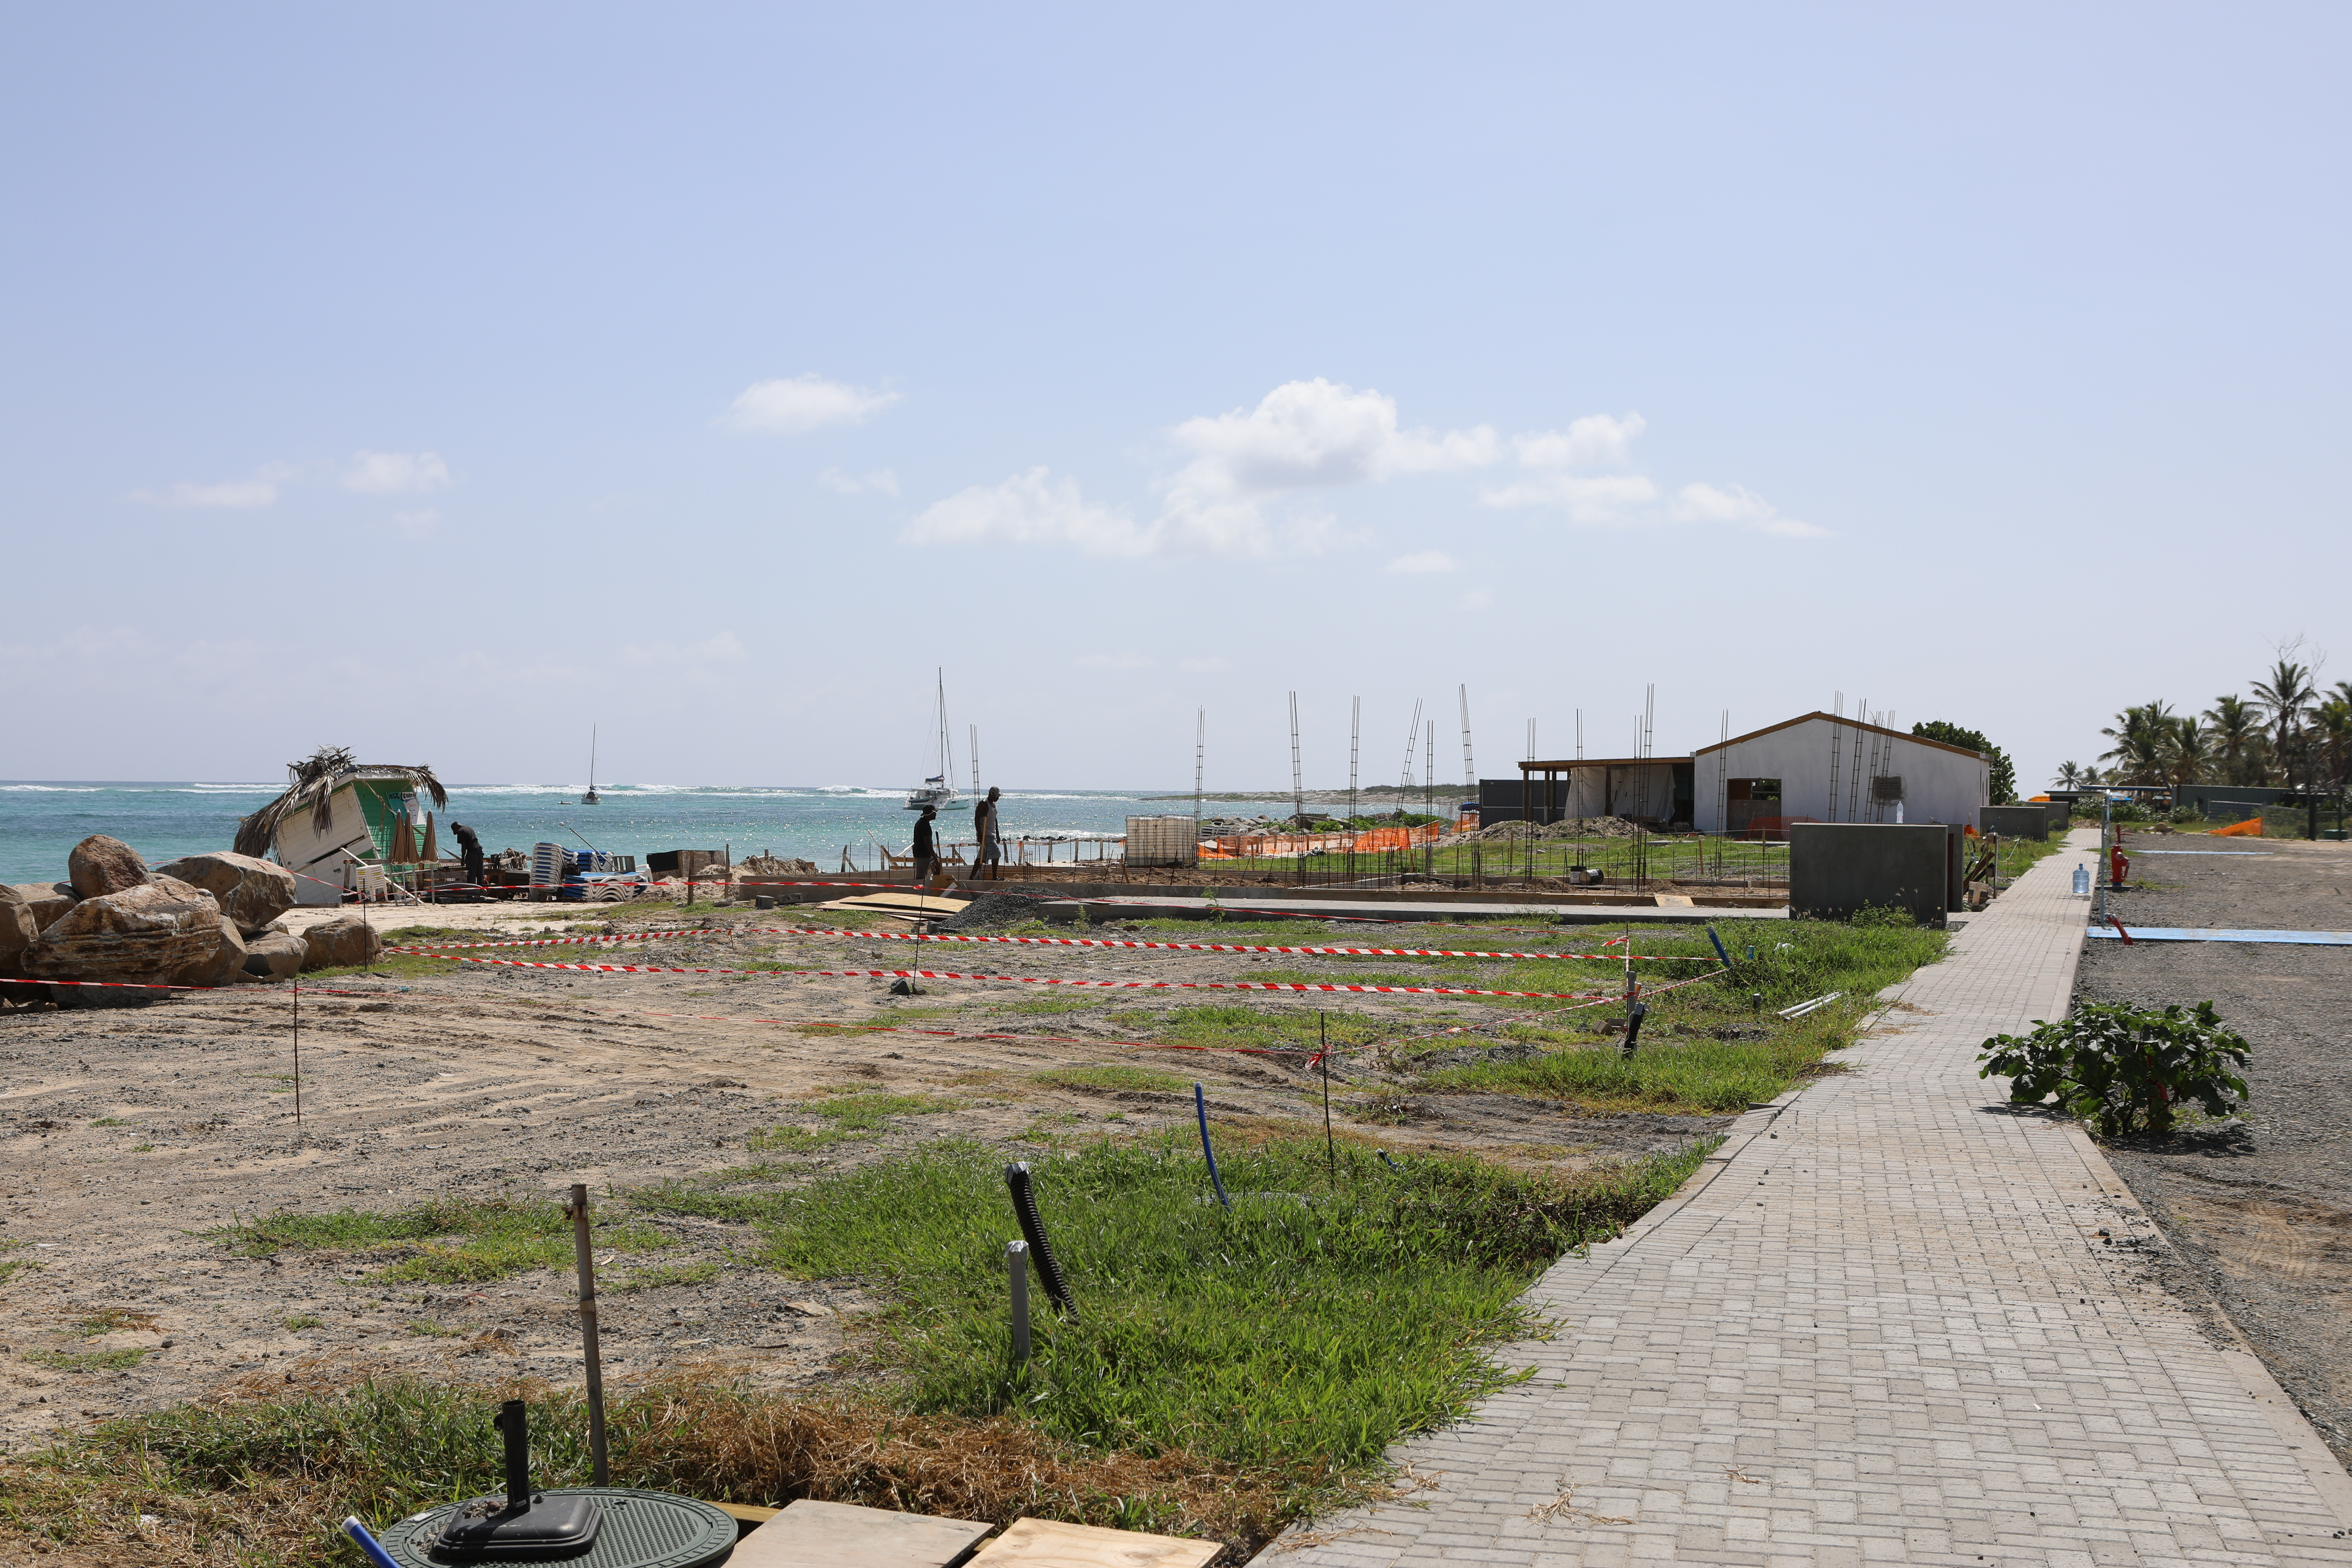 Construction of the new Tourist Carbets on Orient Bay Beach